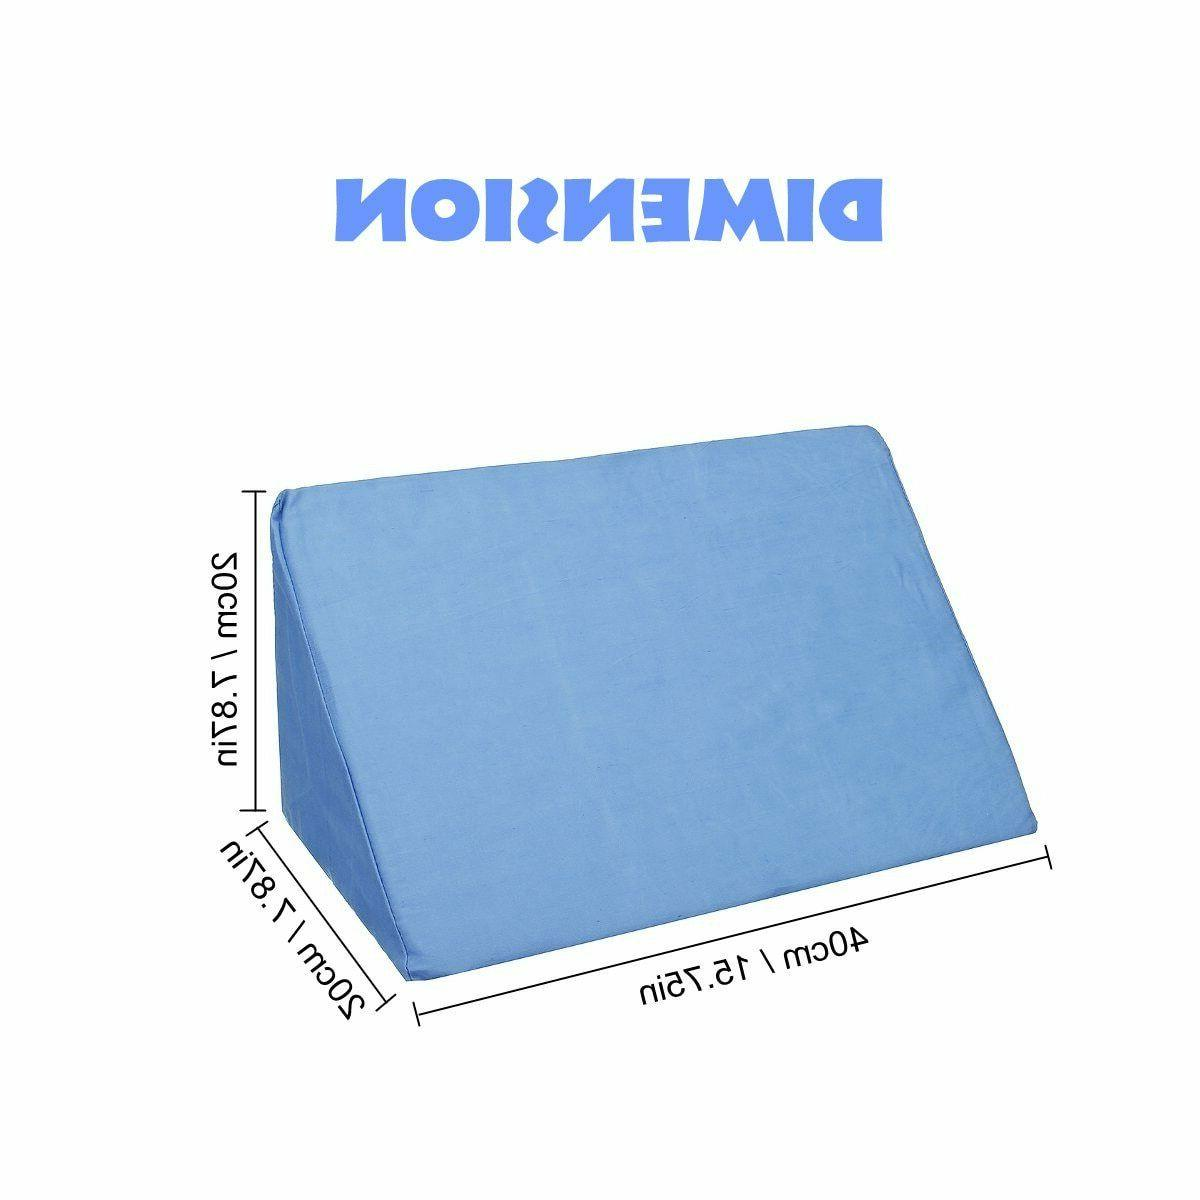 Bed Wedge Pillow Foam Back Elevate Body Positioner support Pain Rest